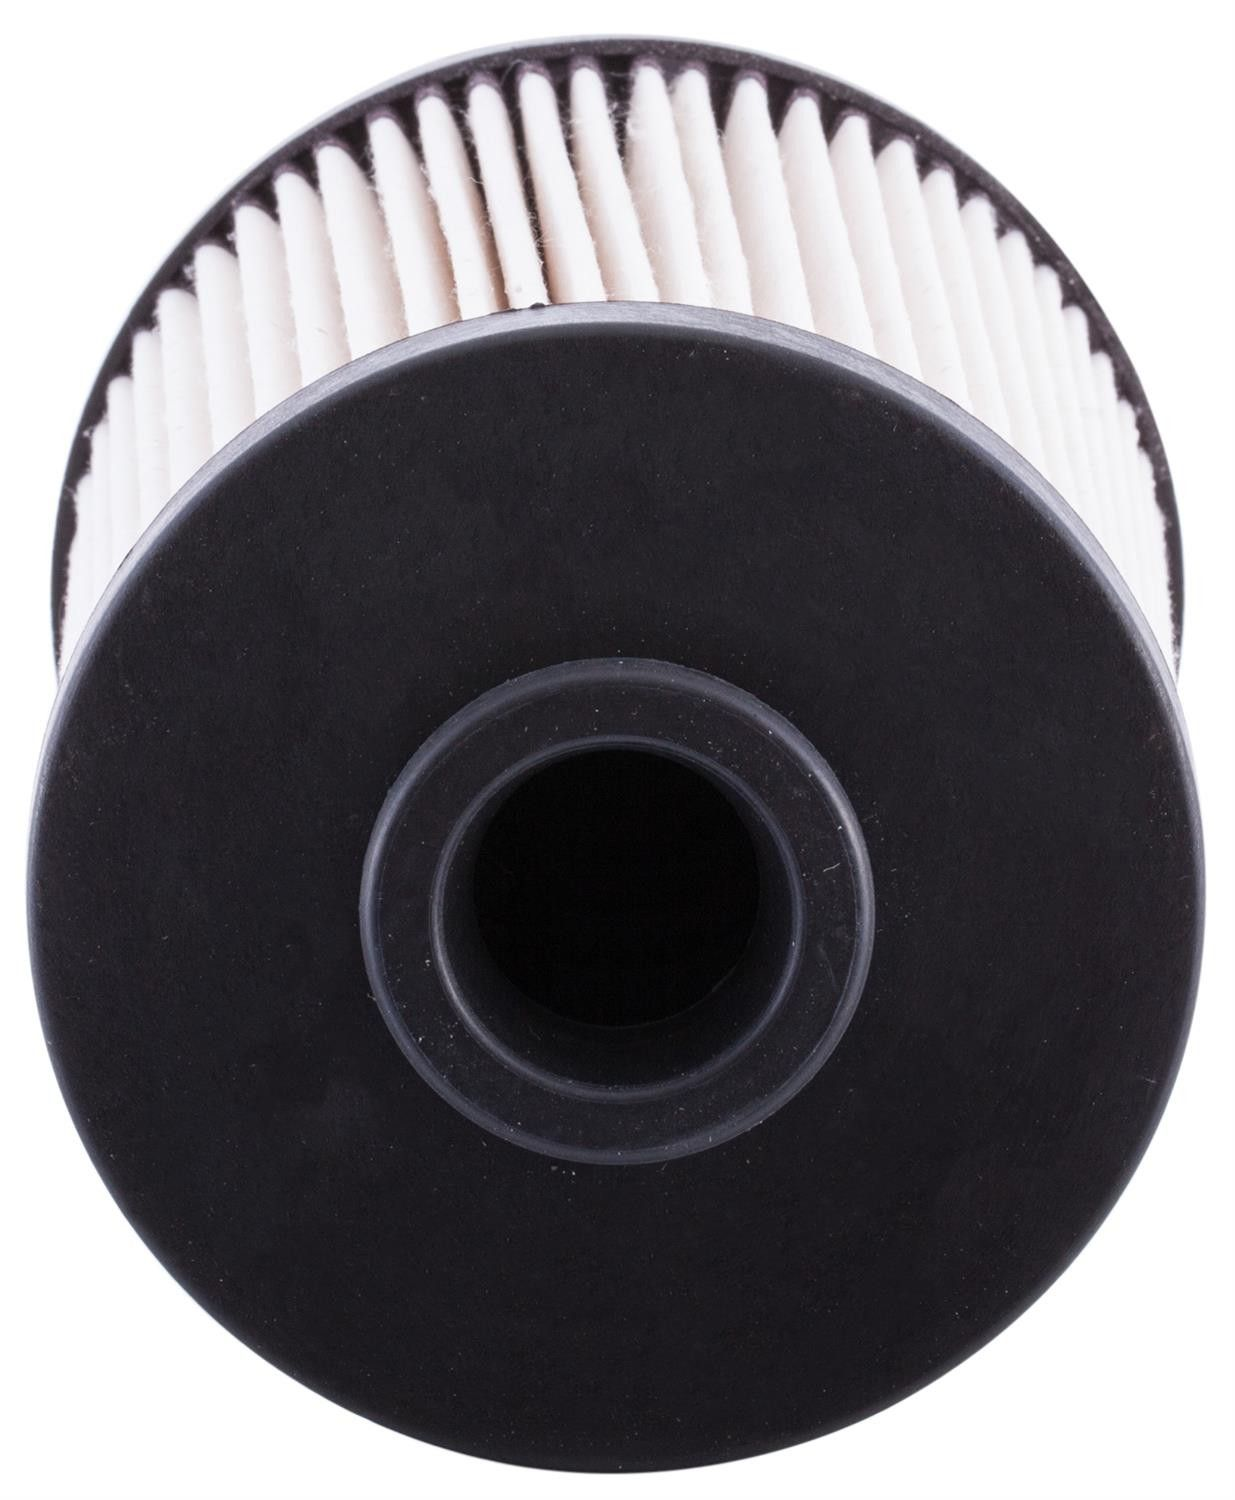 Dodge Ram 3500 Fuel Filter Replacement Fram Full Hastings Mahle 1992 Location 2003 6 Cyl 59l Premium Guard Pf6097